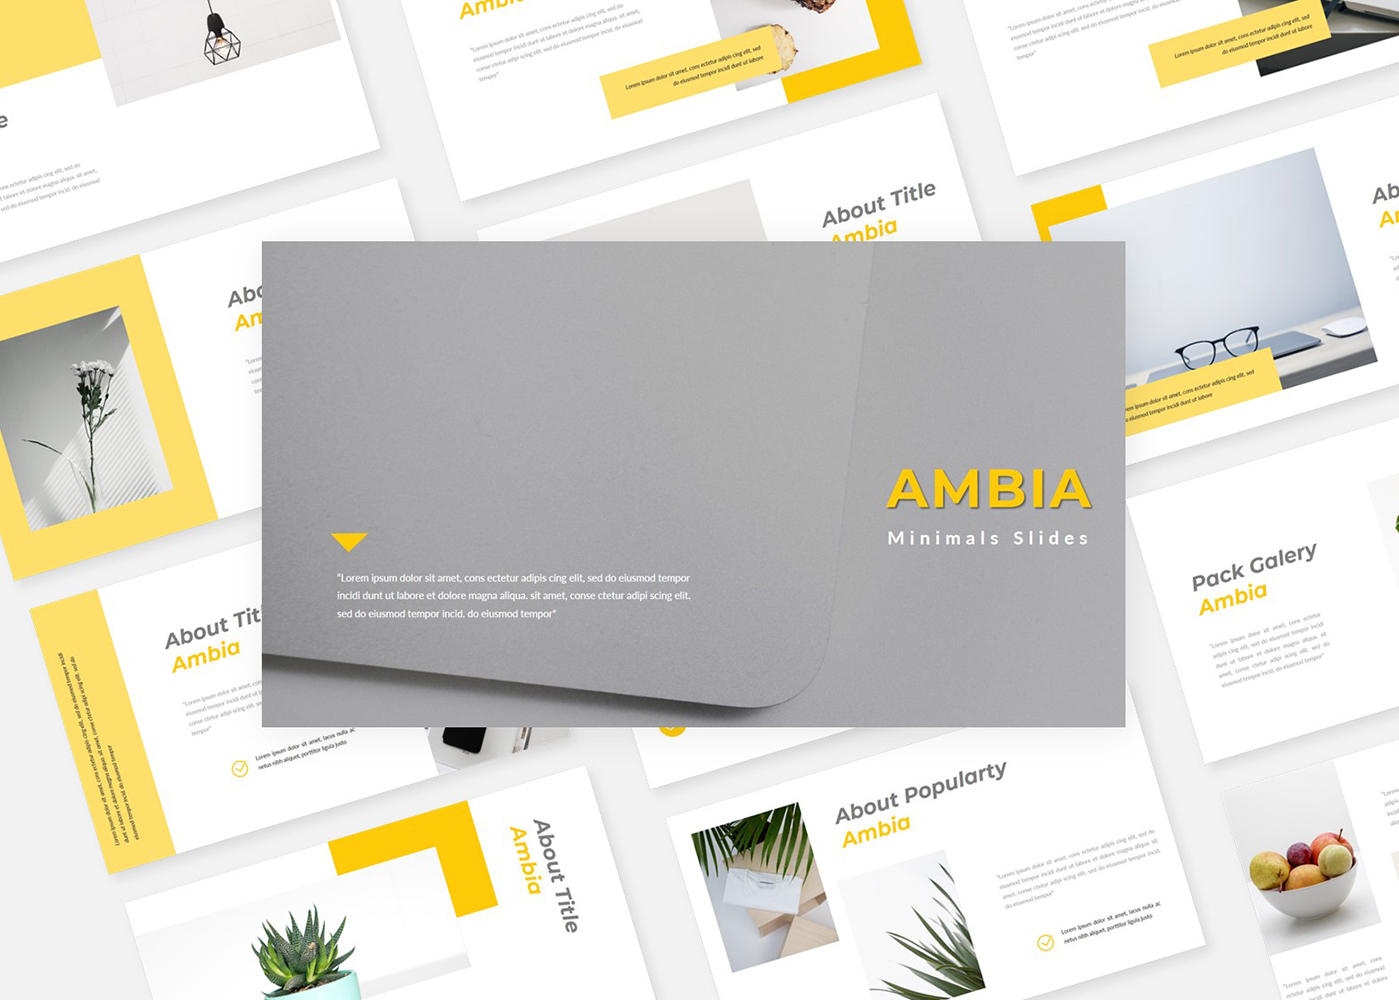 Ambia Minimals PowerPoint templates